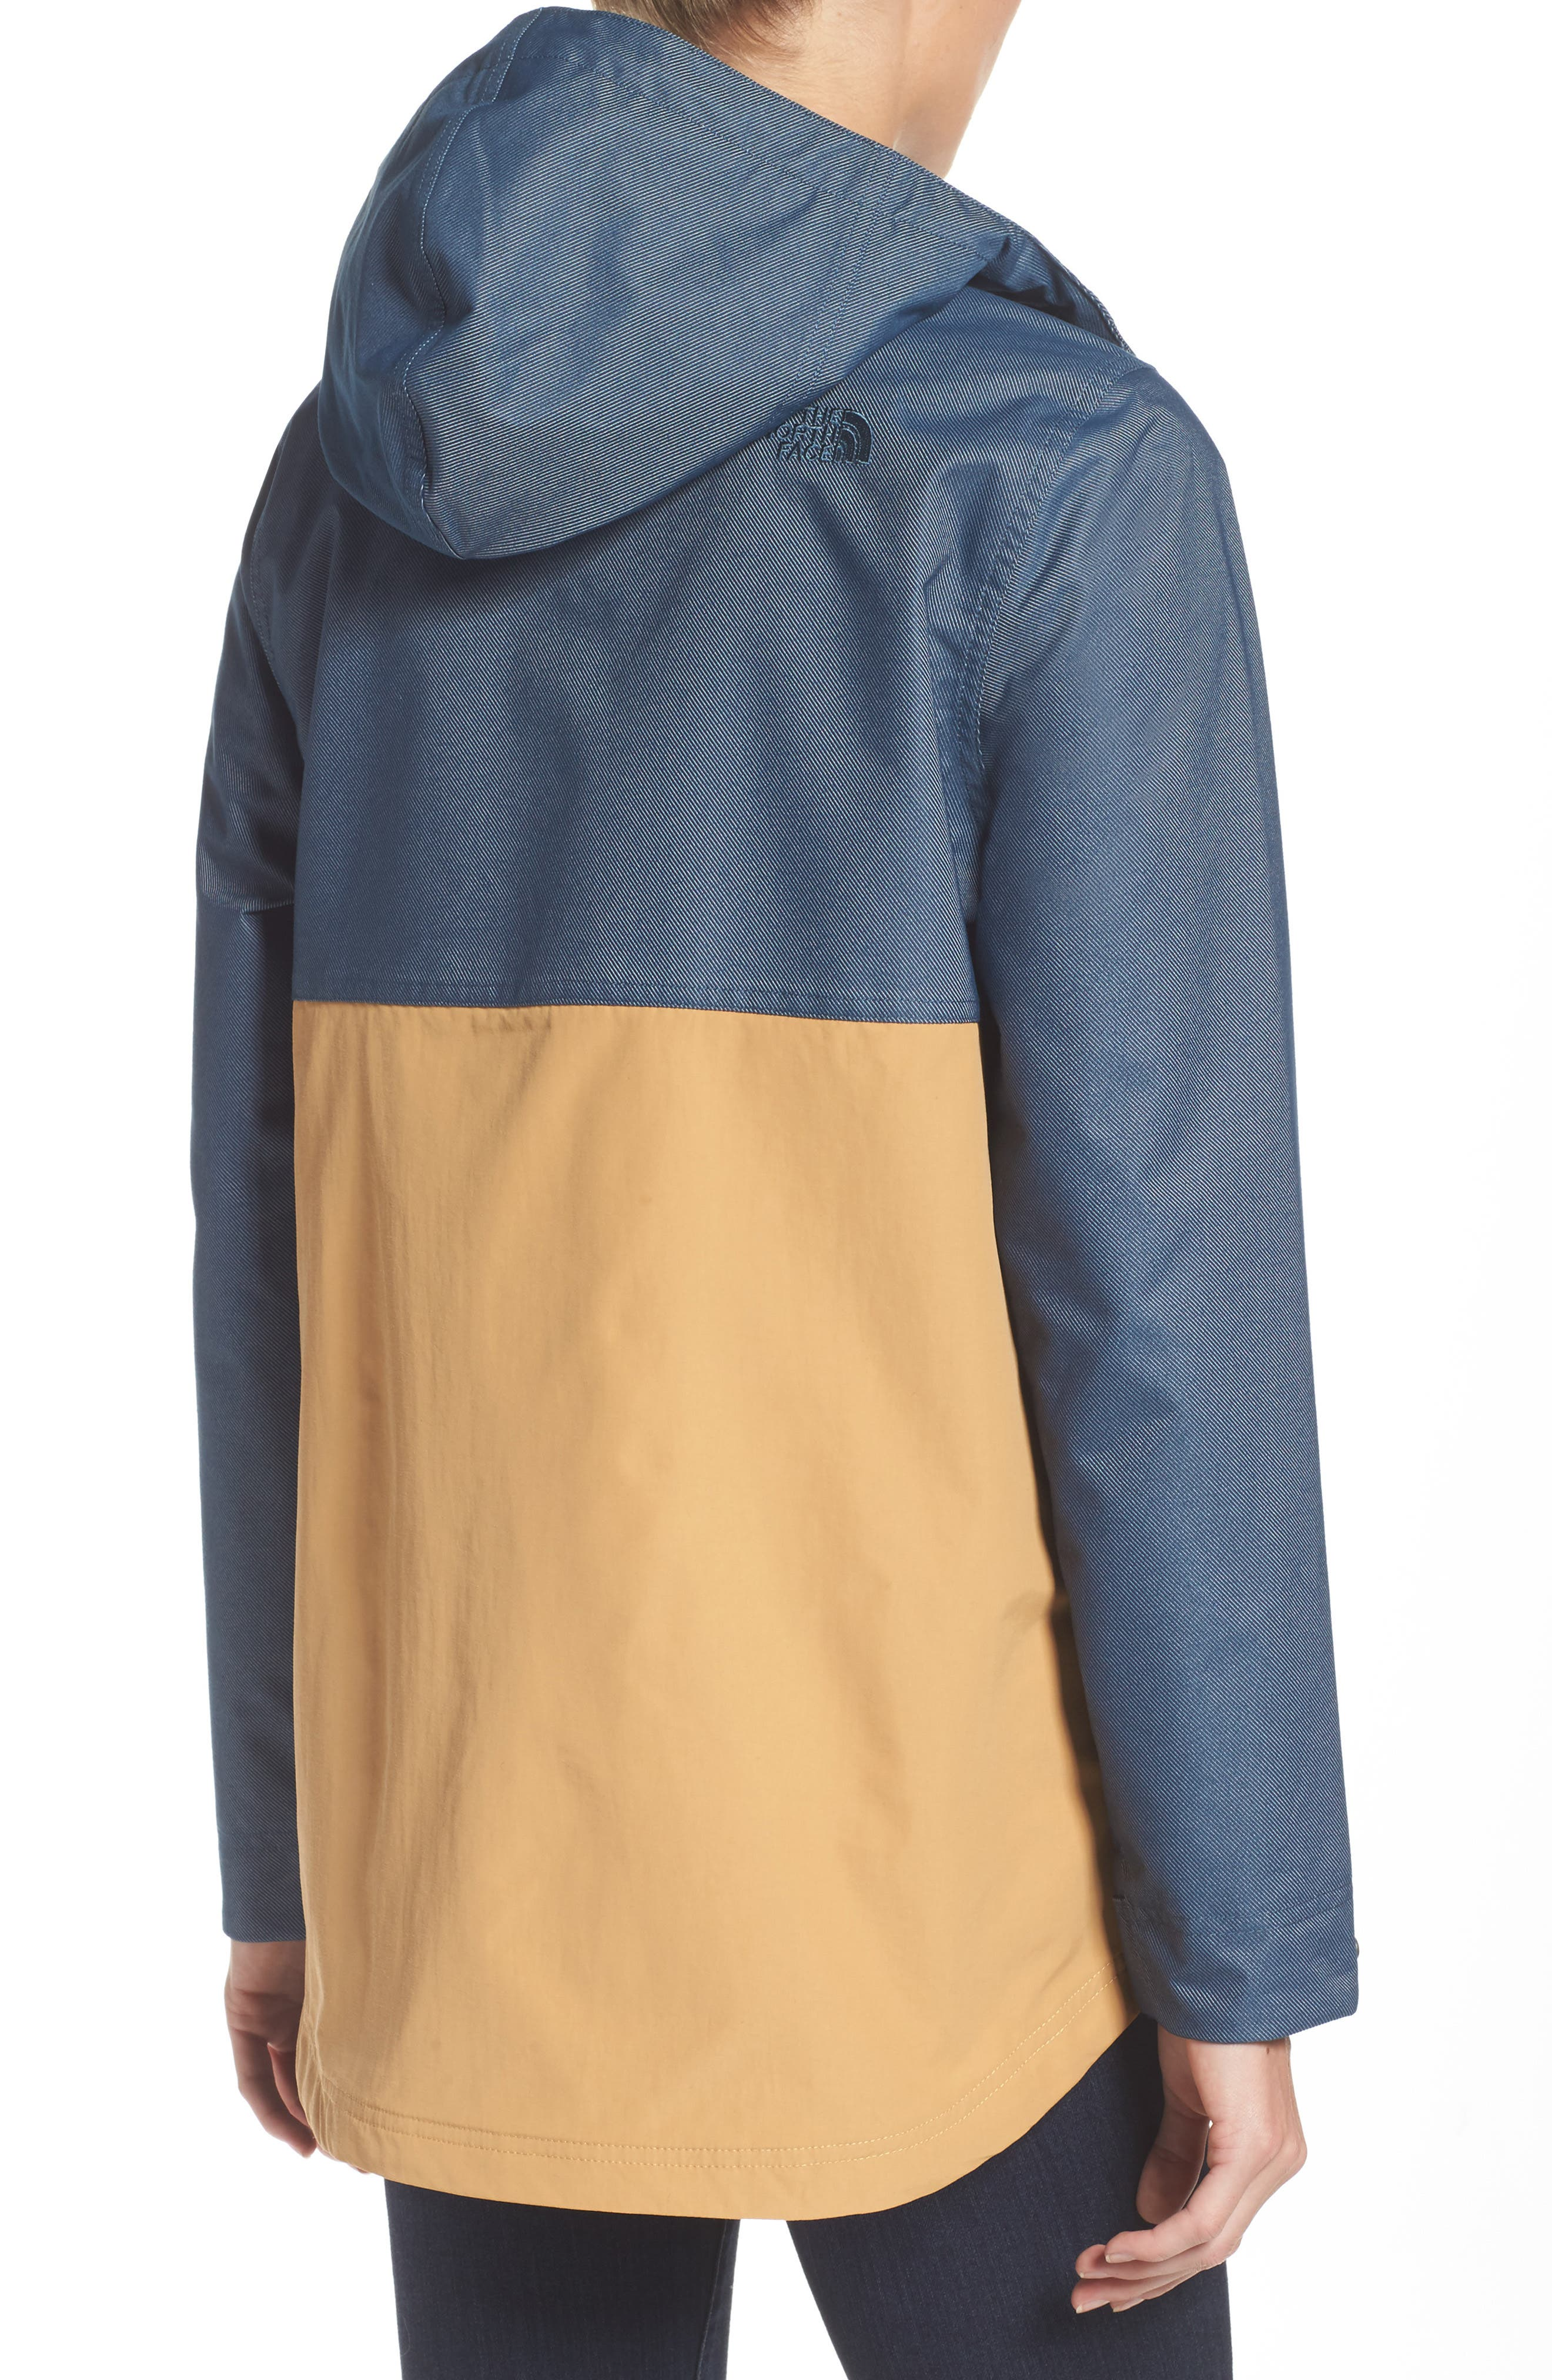 Cadet Anorak Rain Jacket,                             Alternate thumbnail 2, color,                             Biscuit Tan Ink Blue